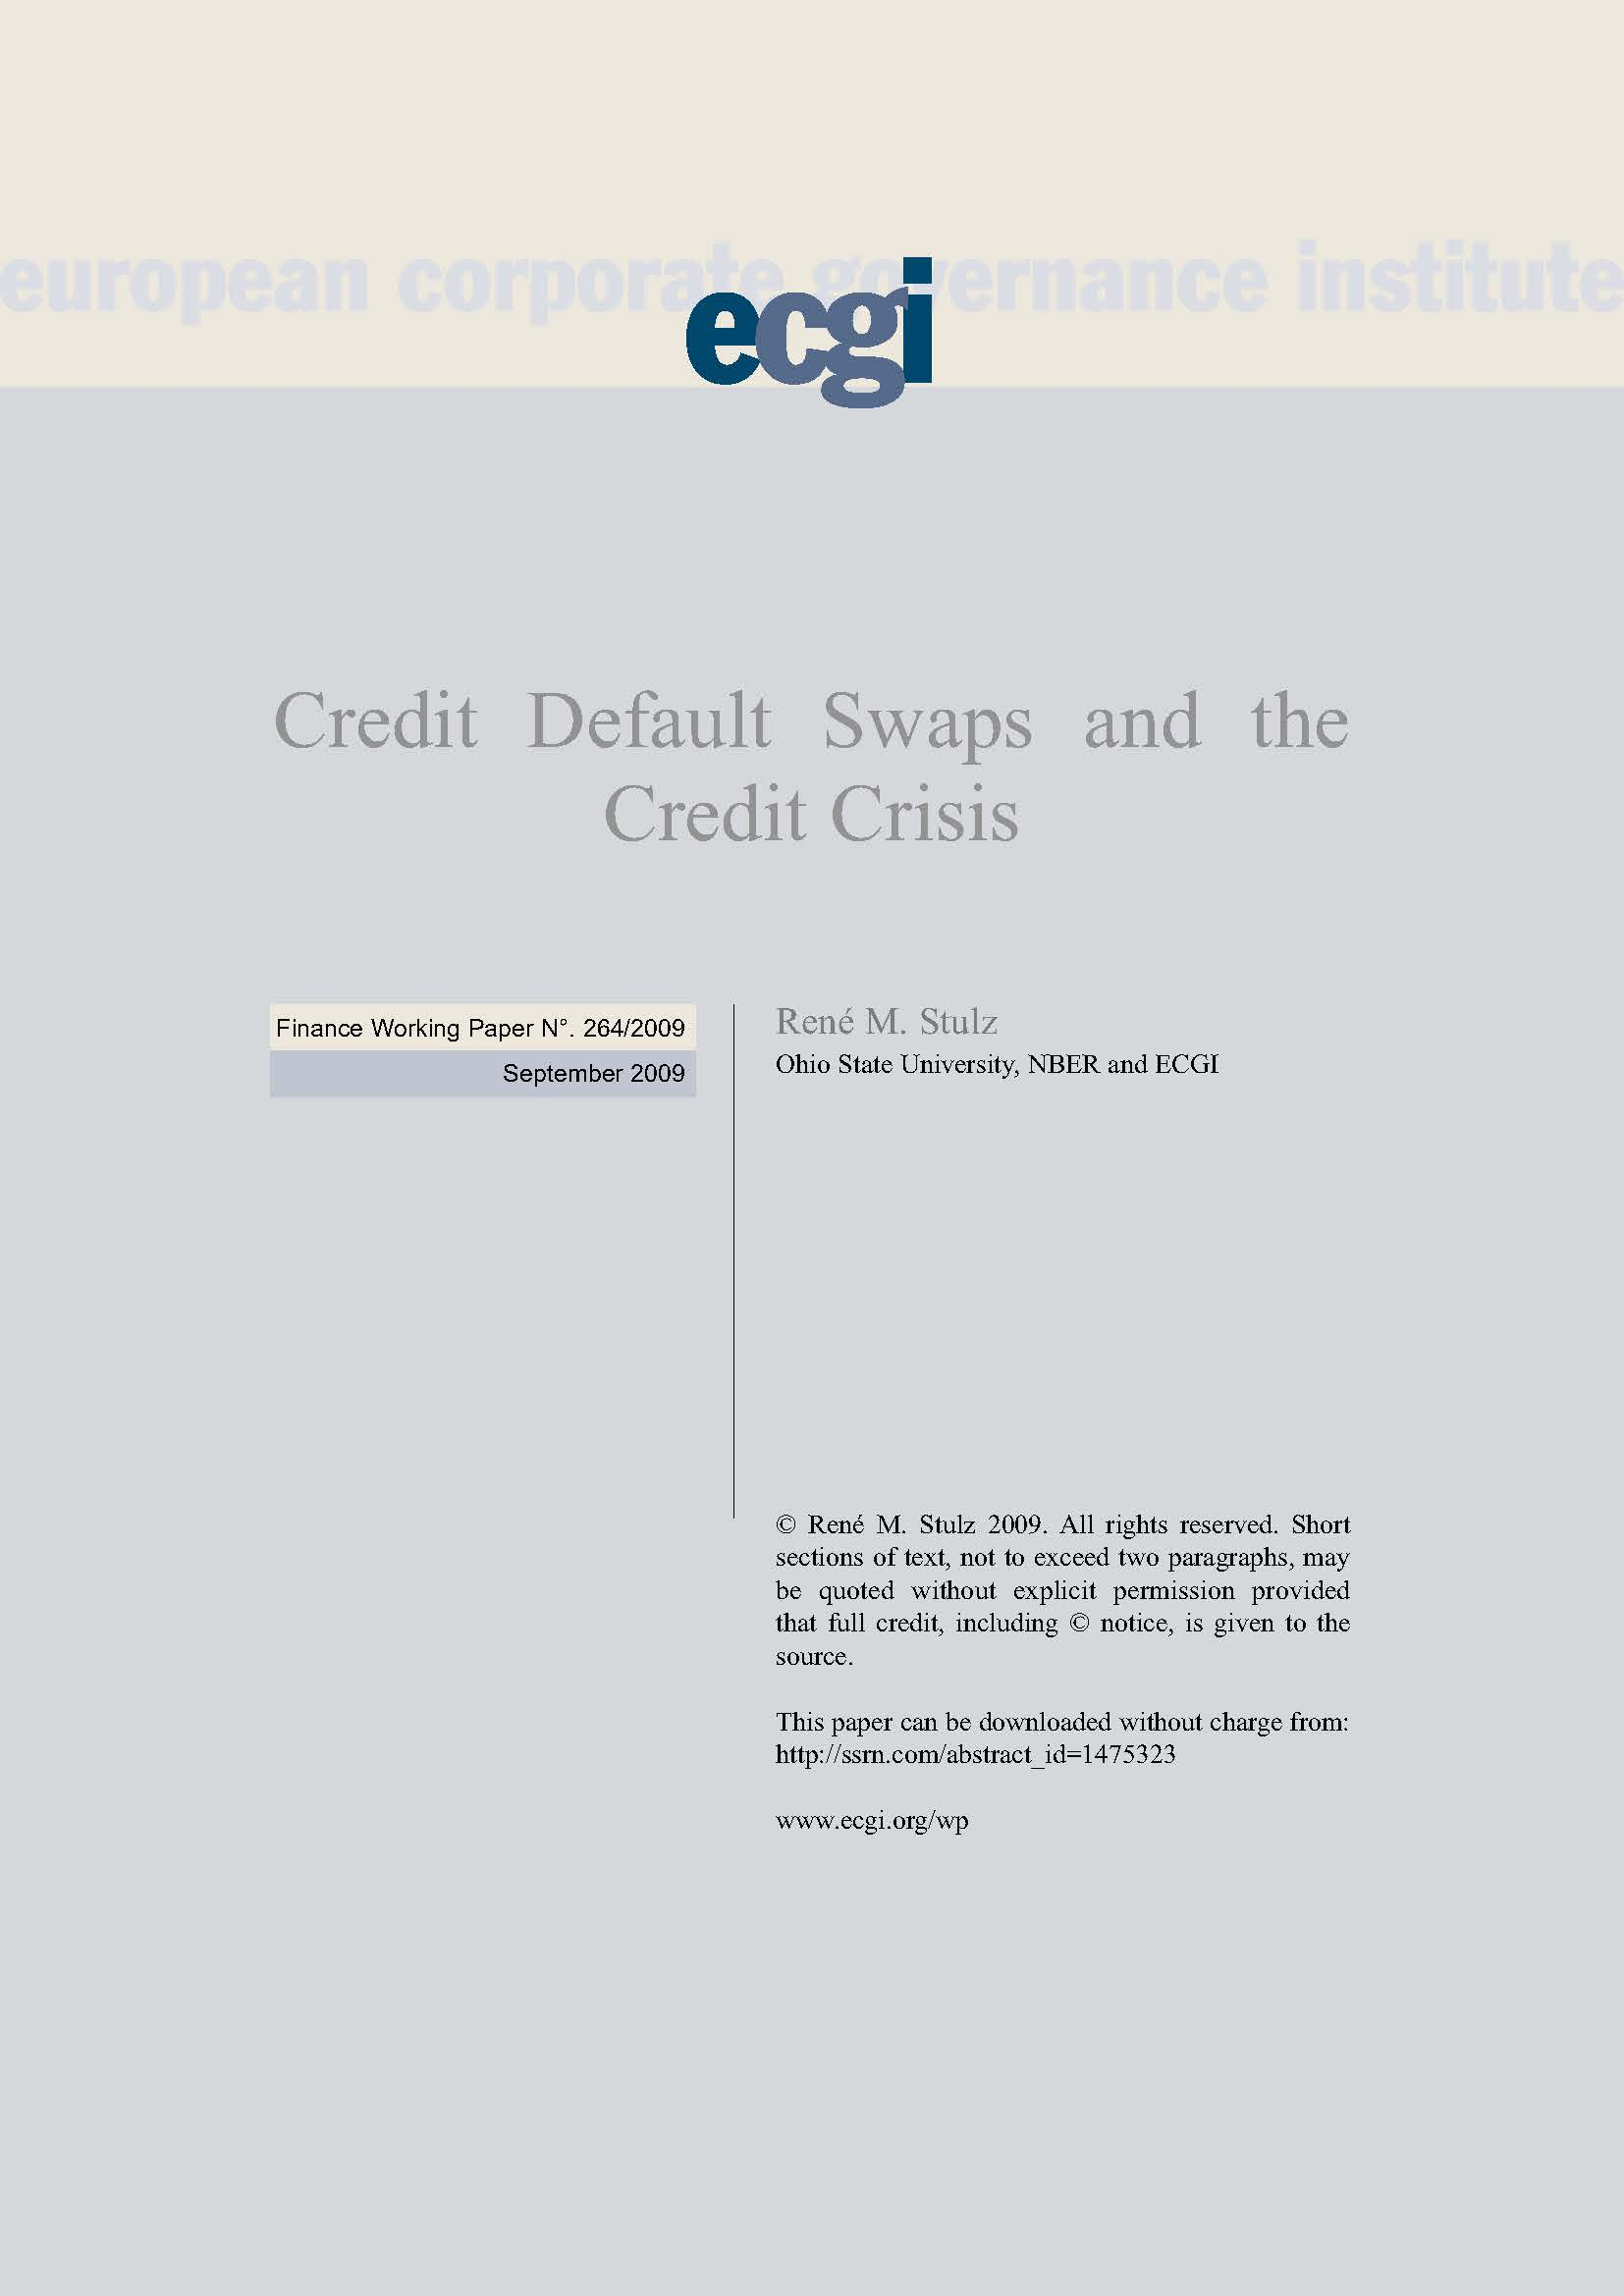 credit default swaps - research papers 1 bank of japan april 2010 this paper examines sovereign credit default swaps (cdss), which have attracted attention since the emergence of the fiscal deficit problem in greece, with particular focus on the expansion of the.